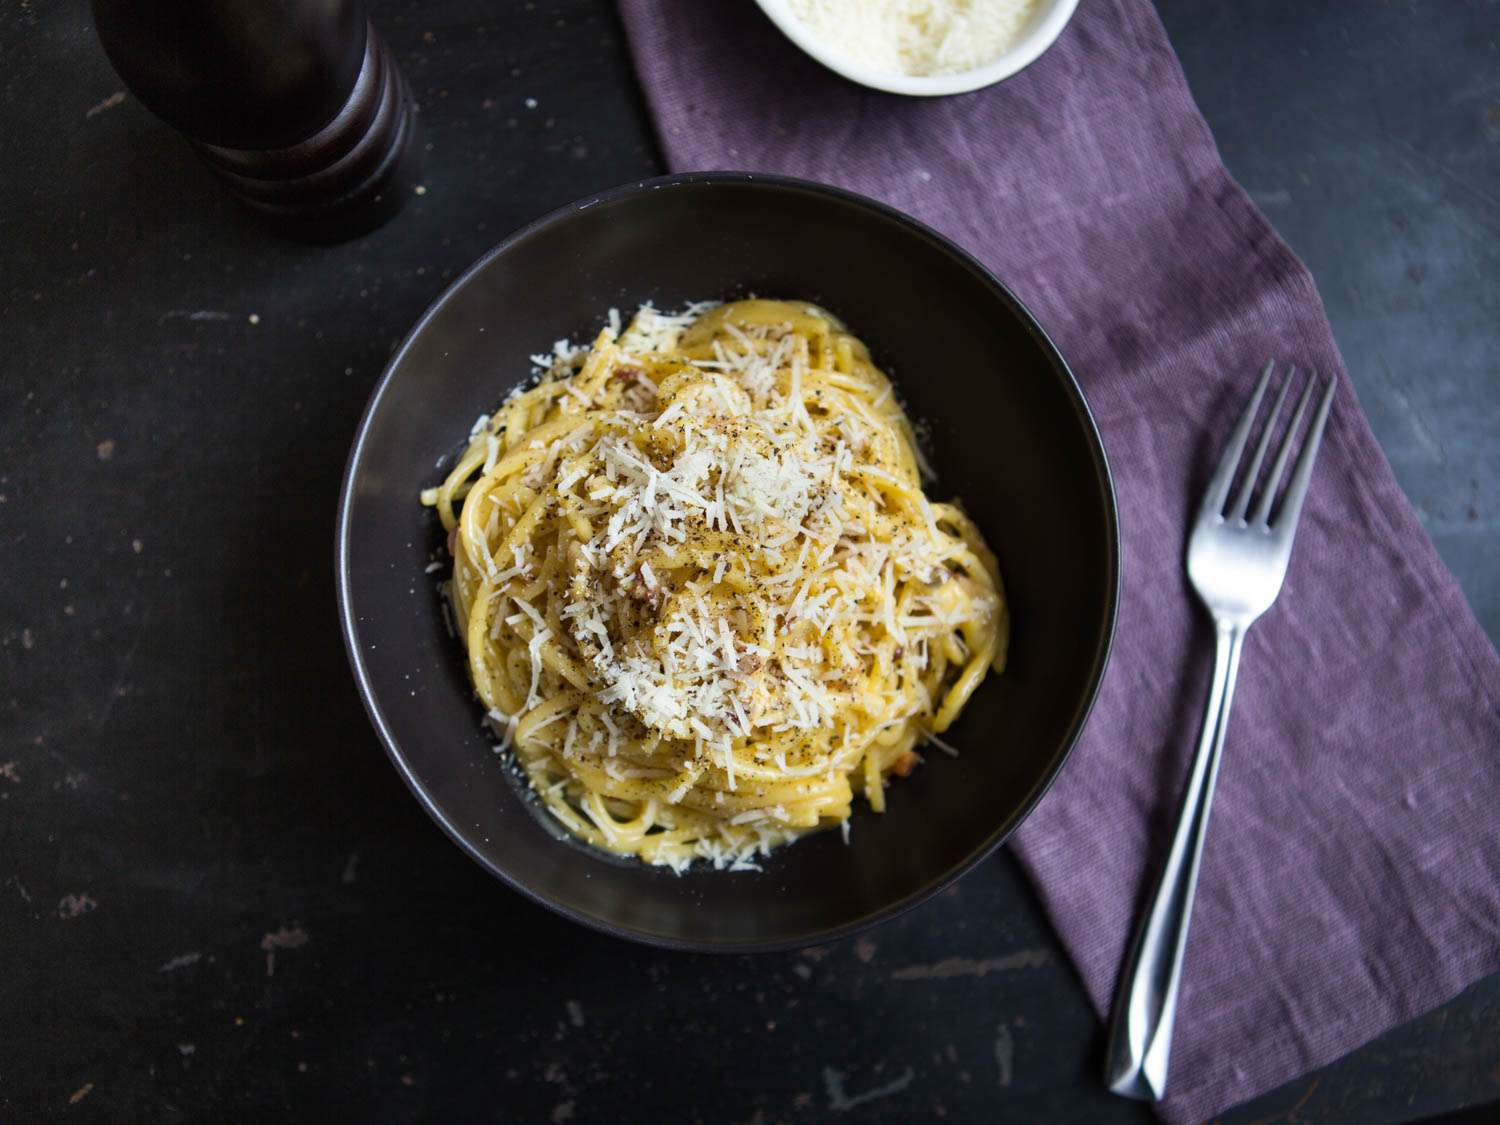 Bowl of cheese-topped spaghetti carbonara on a dark background with purple napkin.